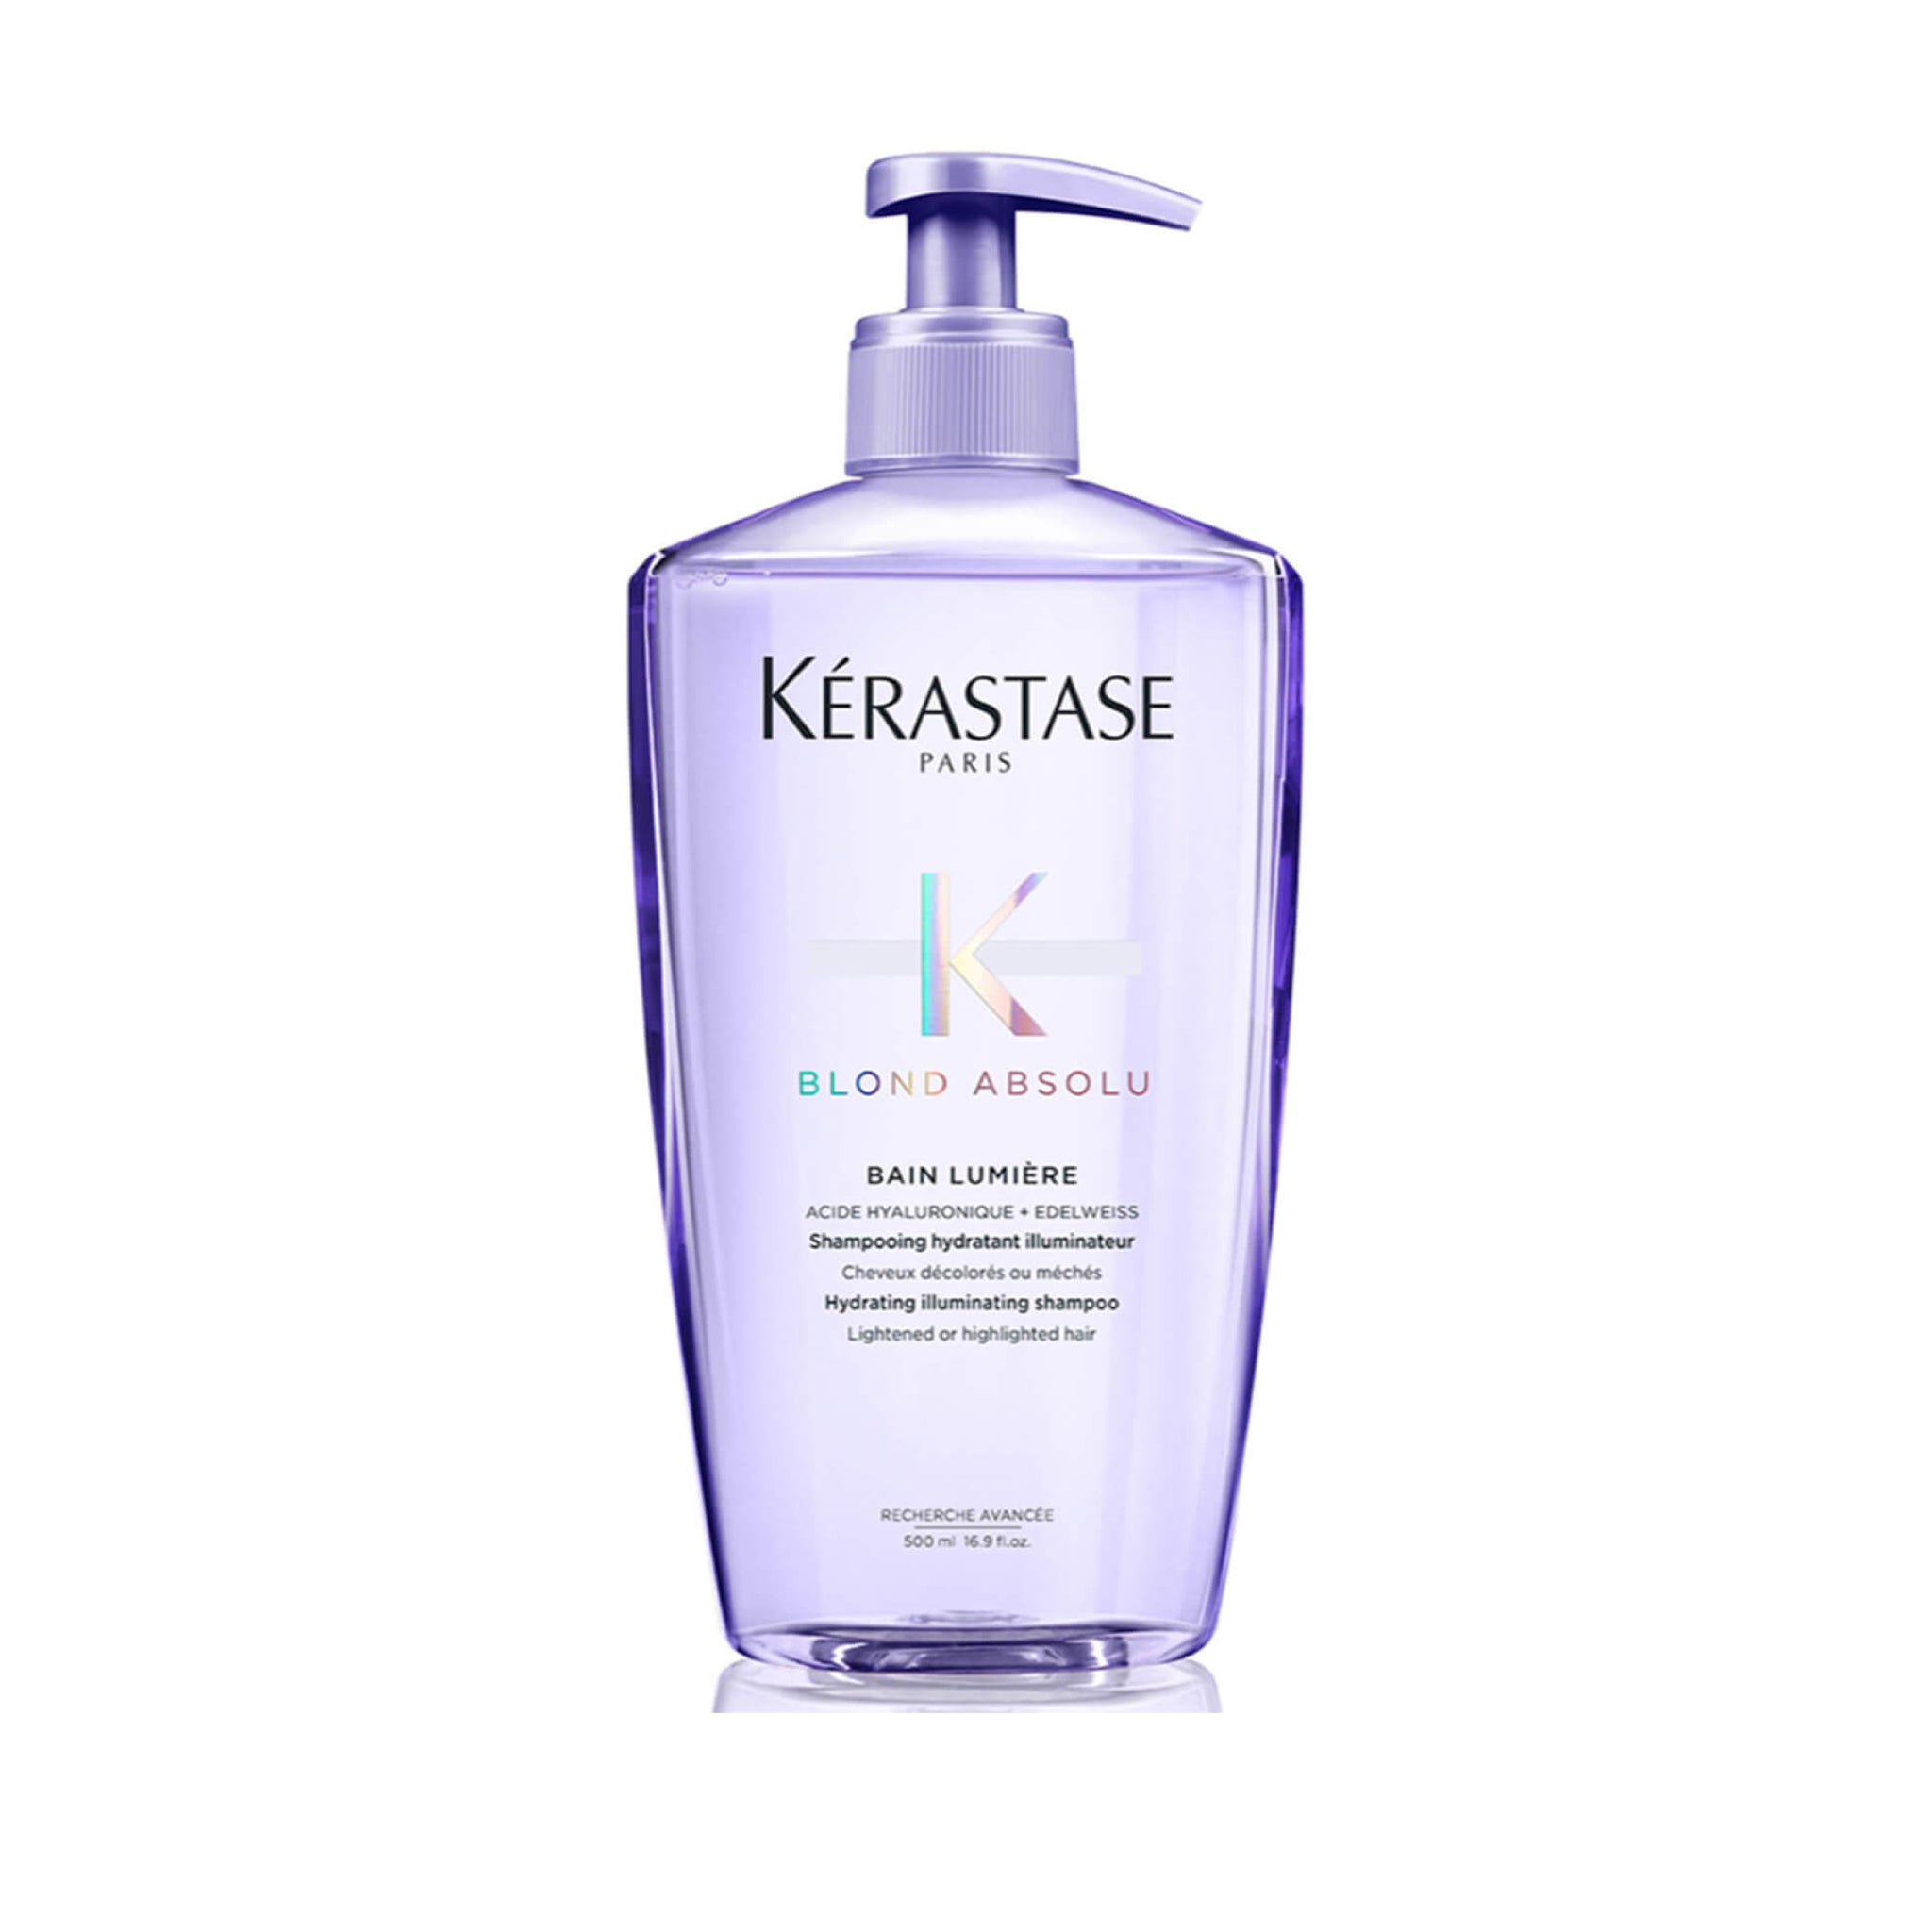 Kérastase Blond Absolu Bain Lumiere 500ml